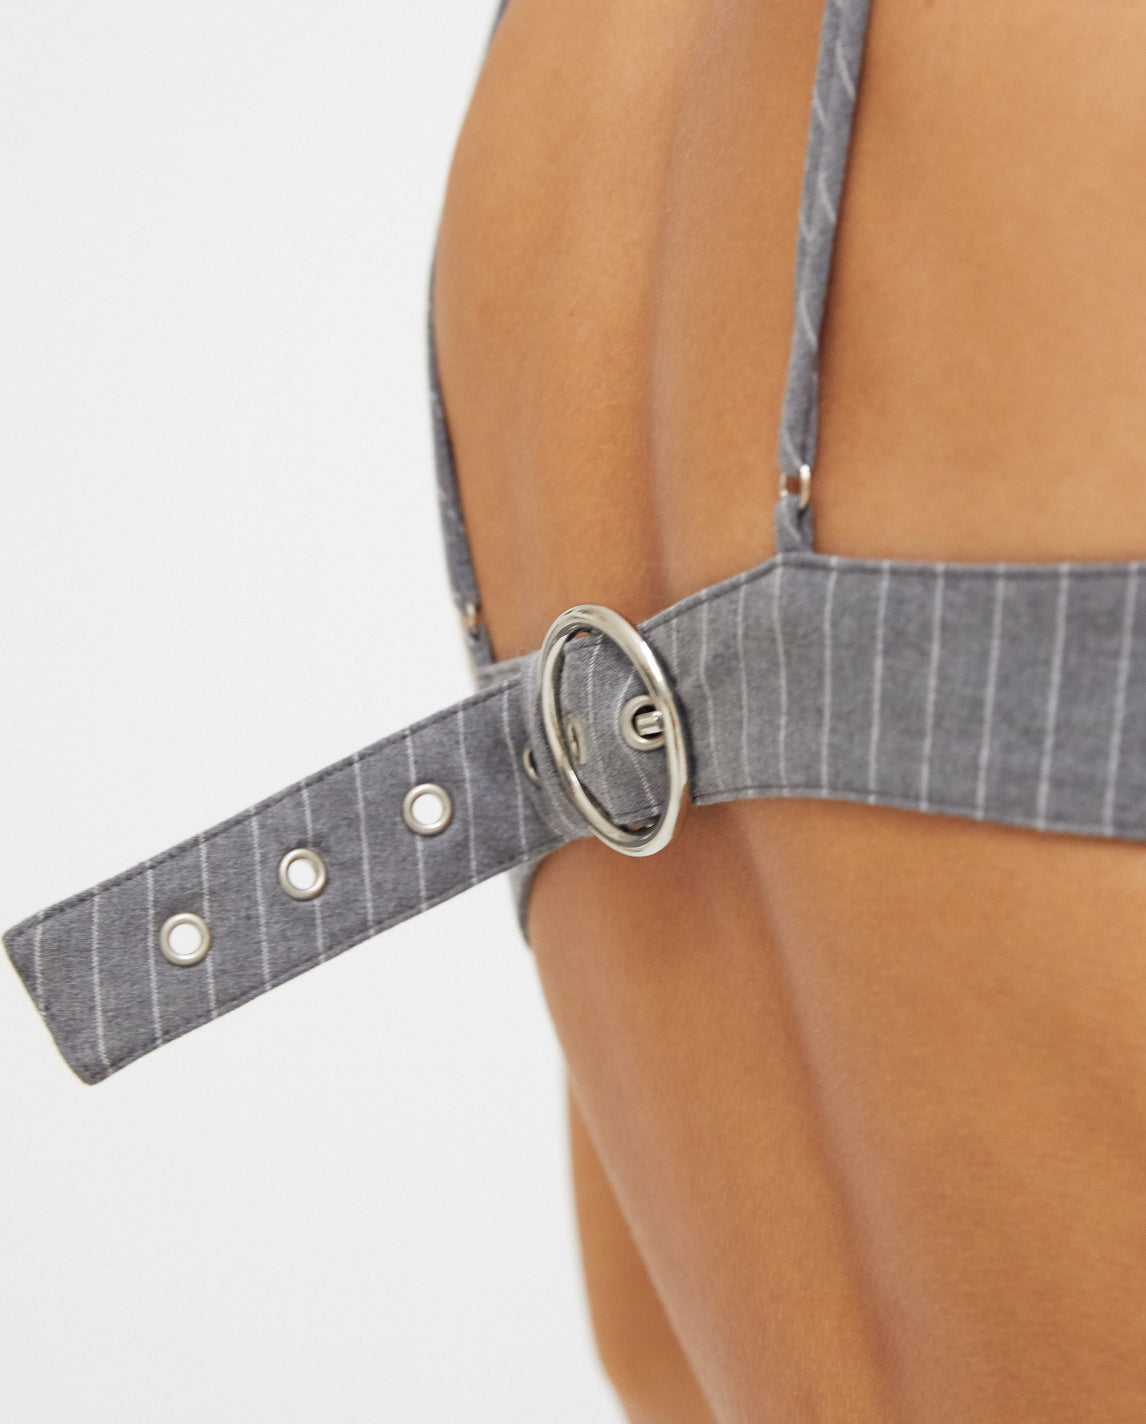 Woven Harness Bra - Grey WOMENS PRIVATE POLICY